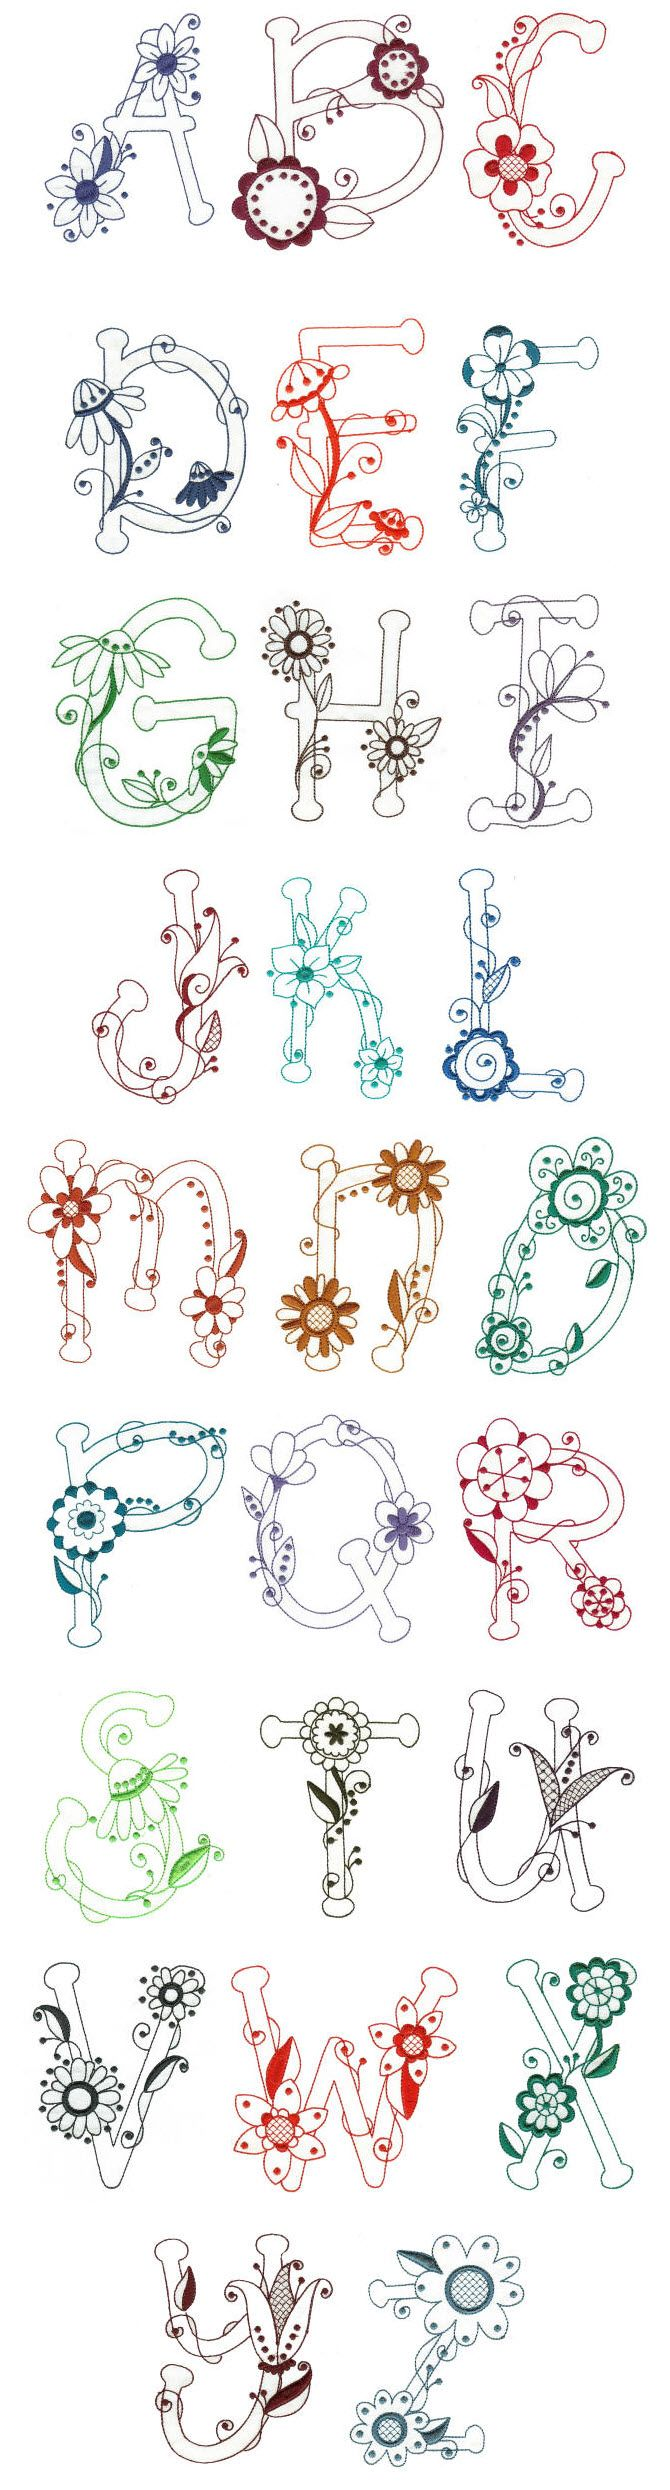 Embroidery | Free Machine Embroidery Designs | Flirty Florals Redwork Alphabet